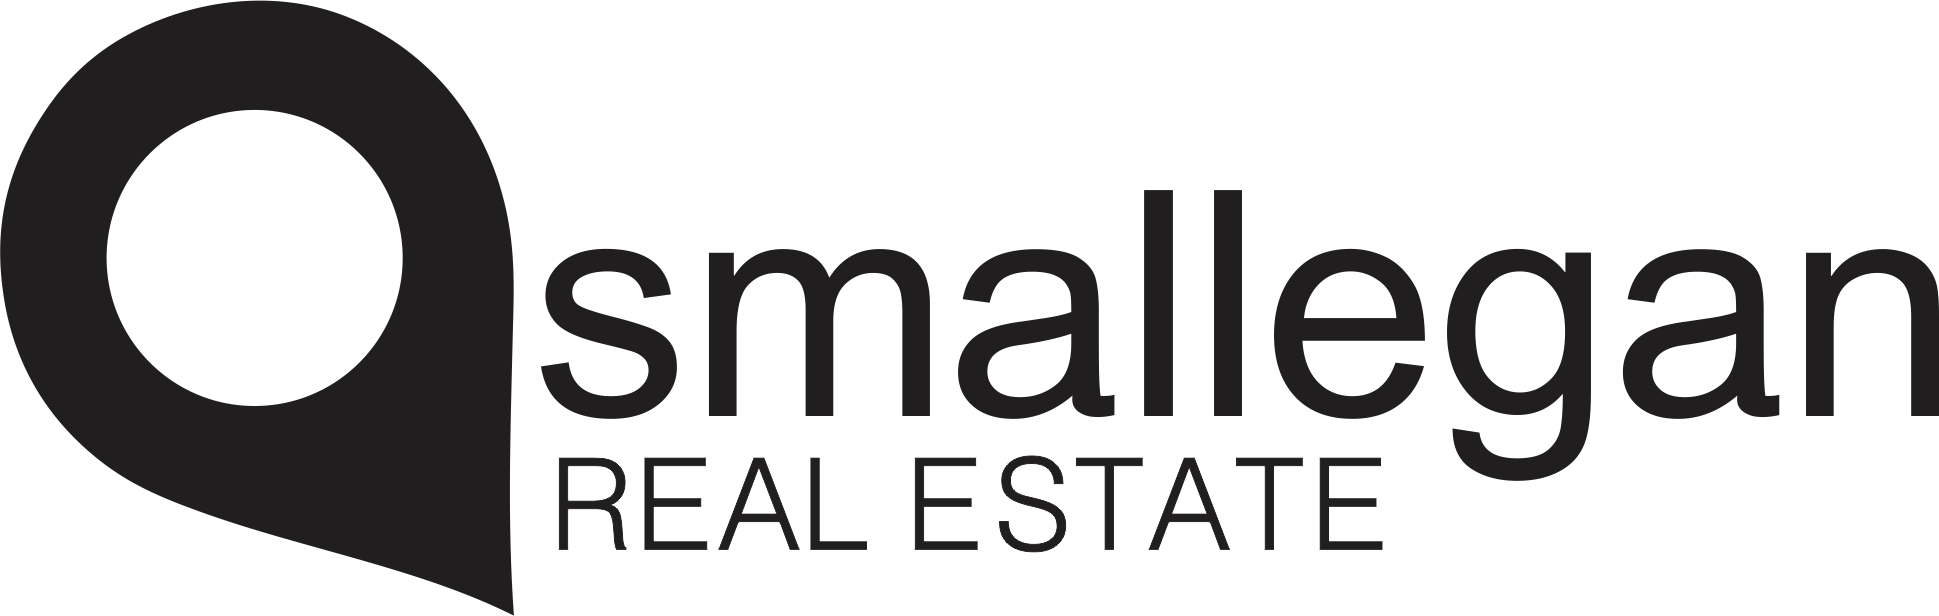 Smallegan Real Estate - Keller Williams Grand Rapids logo